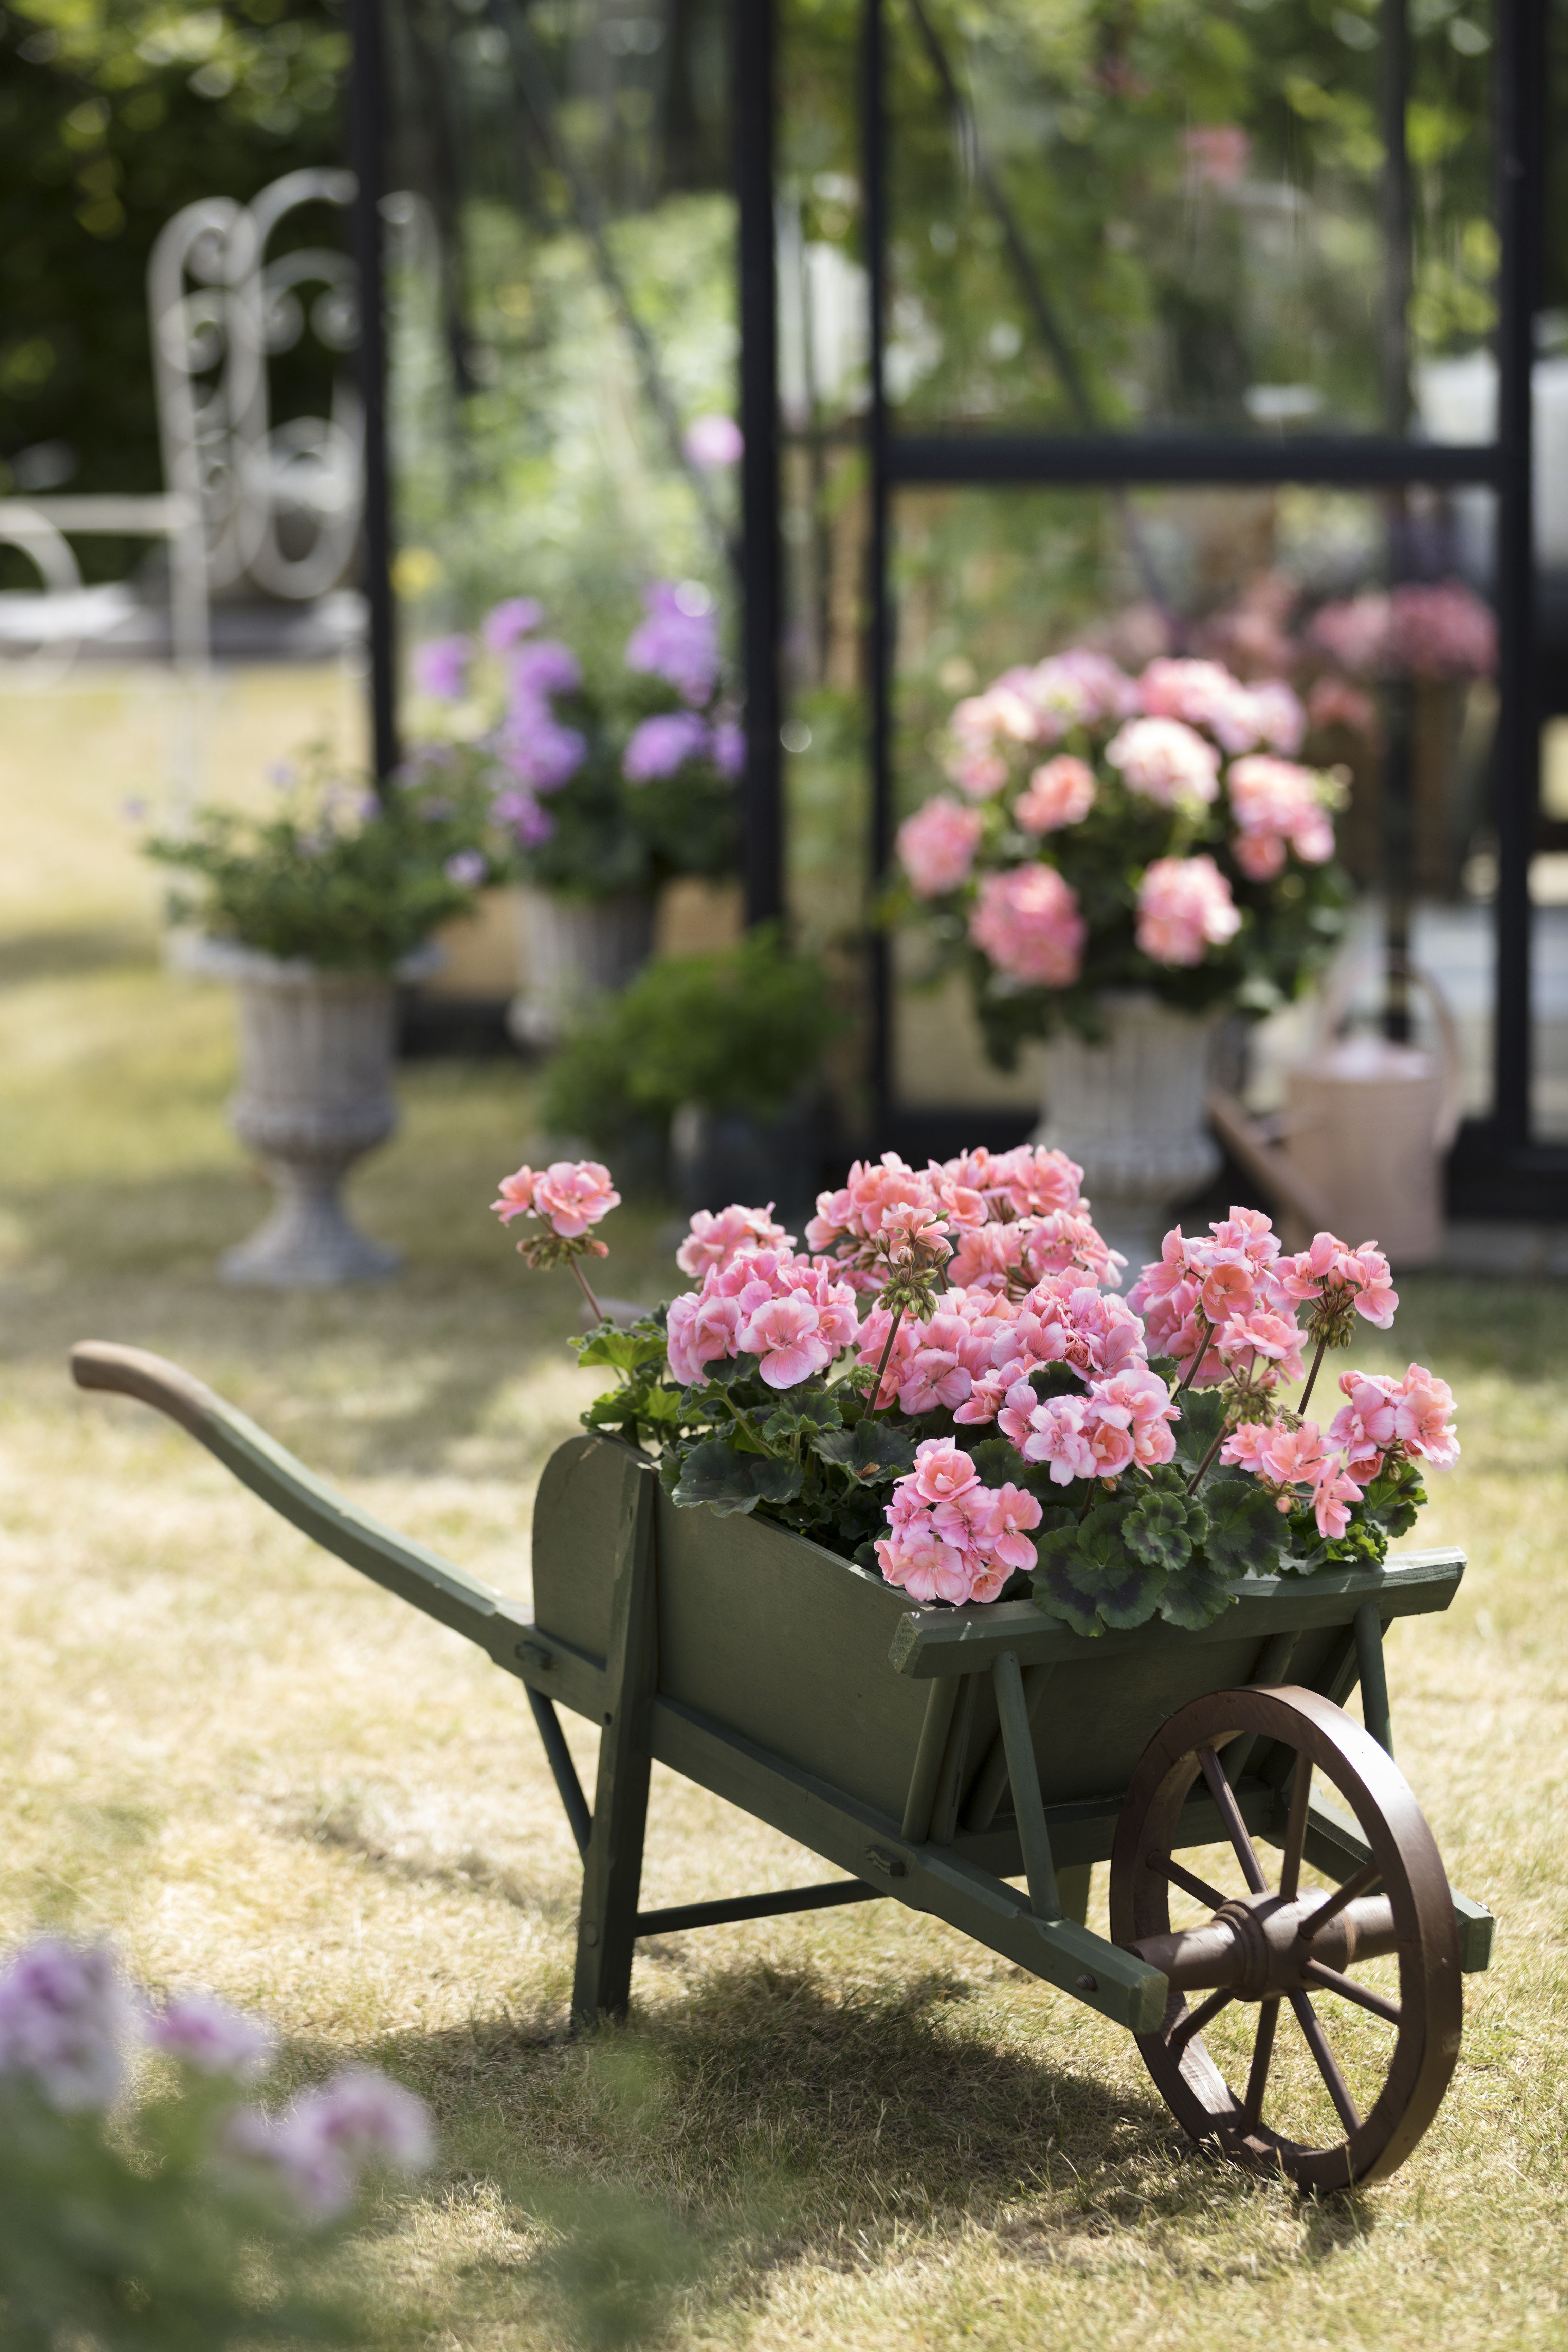 Garden Decorations In Vintage Style Are Very On Trend And Even If